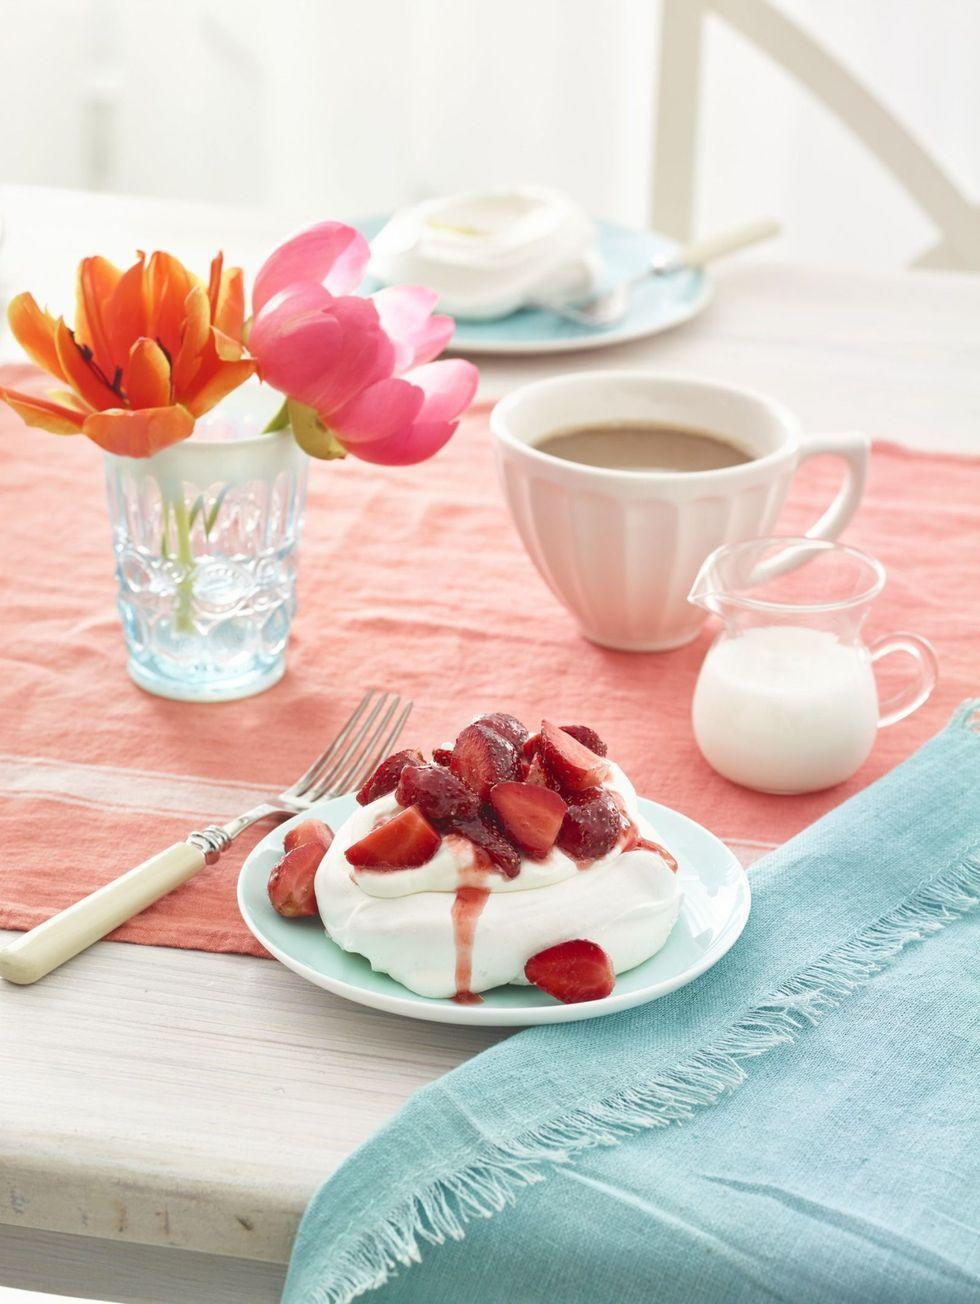 "<p>Pavlovas are a dessert that always impress. Get ready to whip your merengue to perfection with this tasty summer dessert. </p><p><em><strong><a href=""https://www.womansday.com/food-recipes/food-drinks/recipes/a54431/pavlovas-with-strawberries-and-cream-recipe/"" rel=""nofollow noopener"" target=""_blank"" data-ylk=""slk:Get the Pavlovas with Strawberries and Cream recipe."" class=""link rapid-noclick-resp"">Get the Pavlovas with Strawberries and Cream recipe. </a></strong></em></p>"